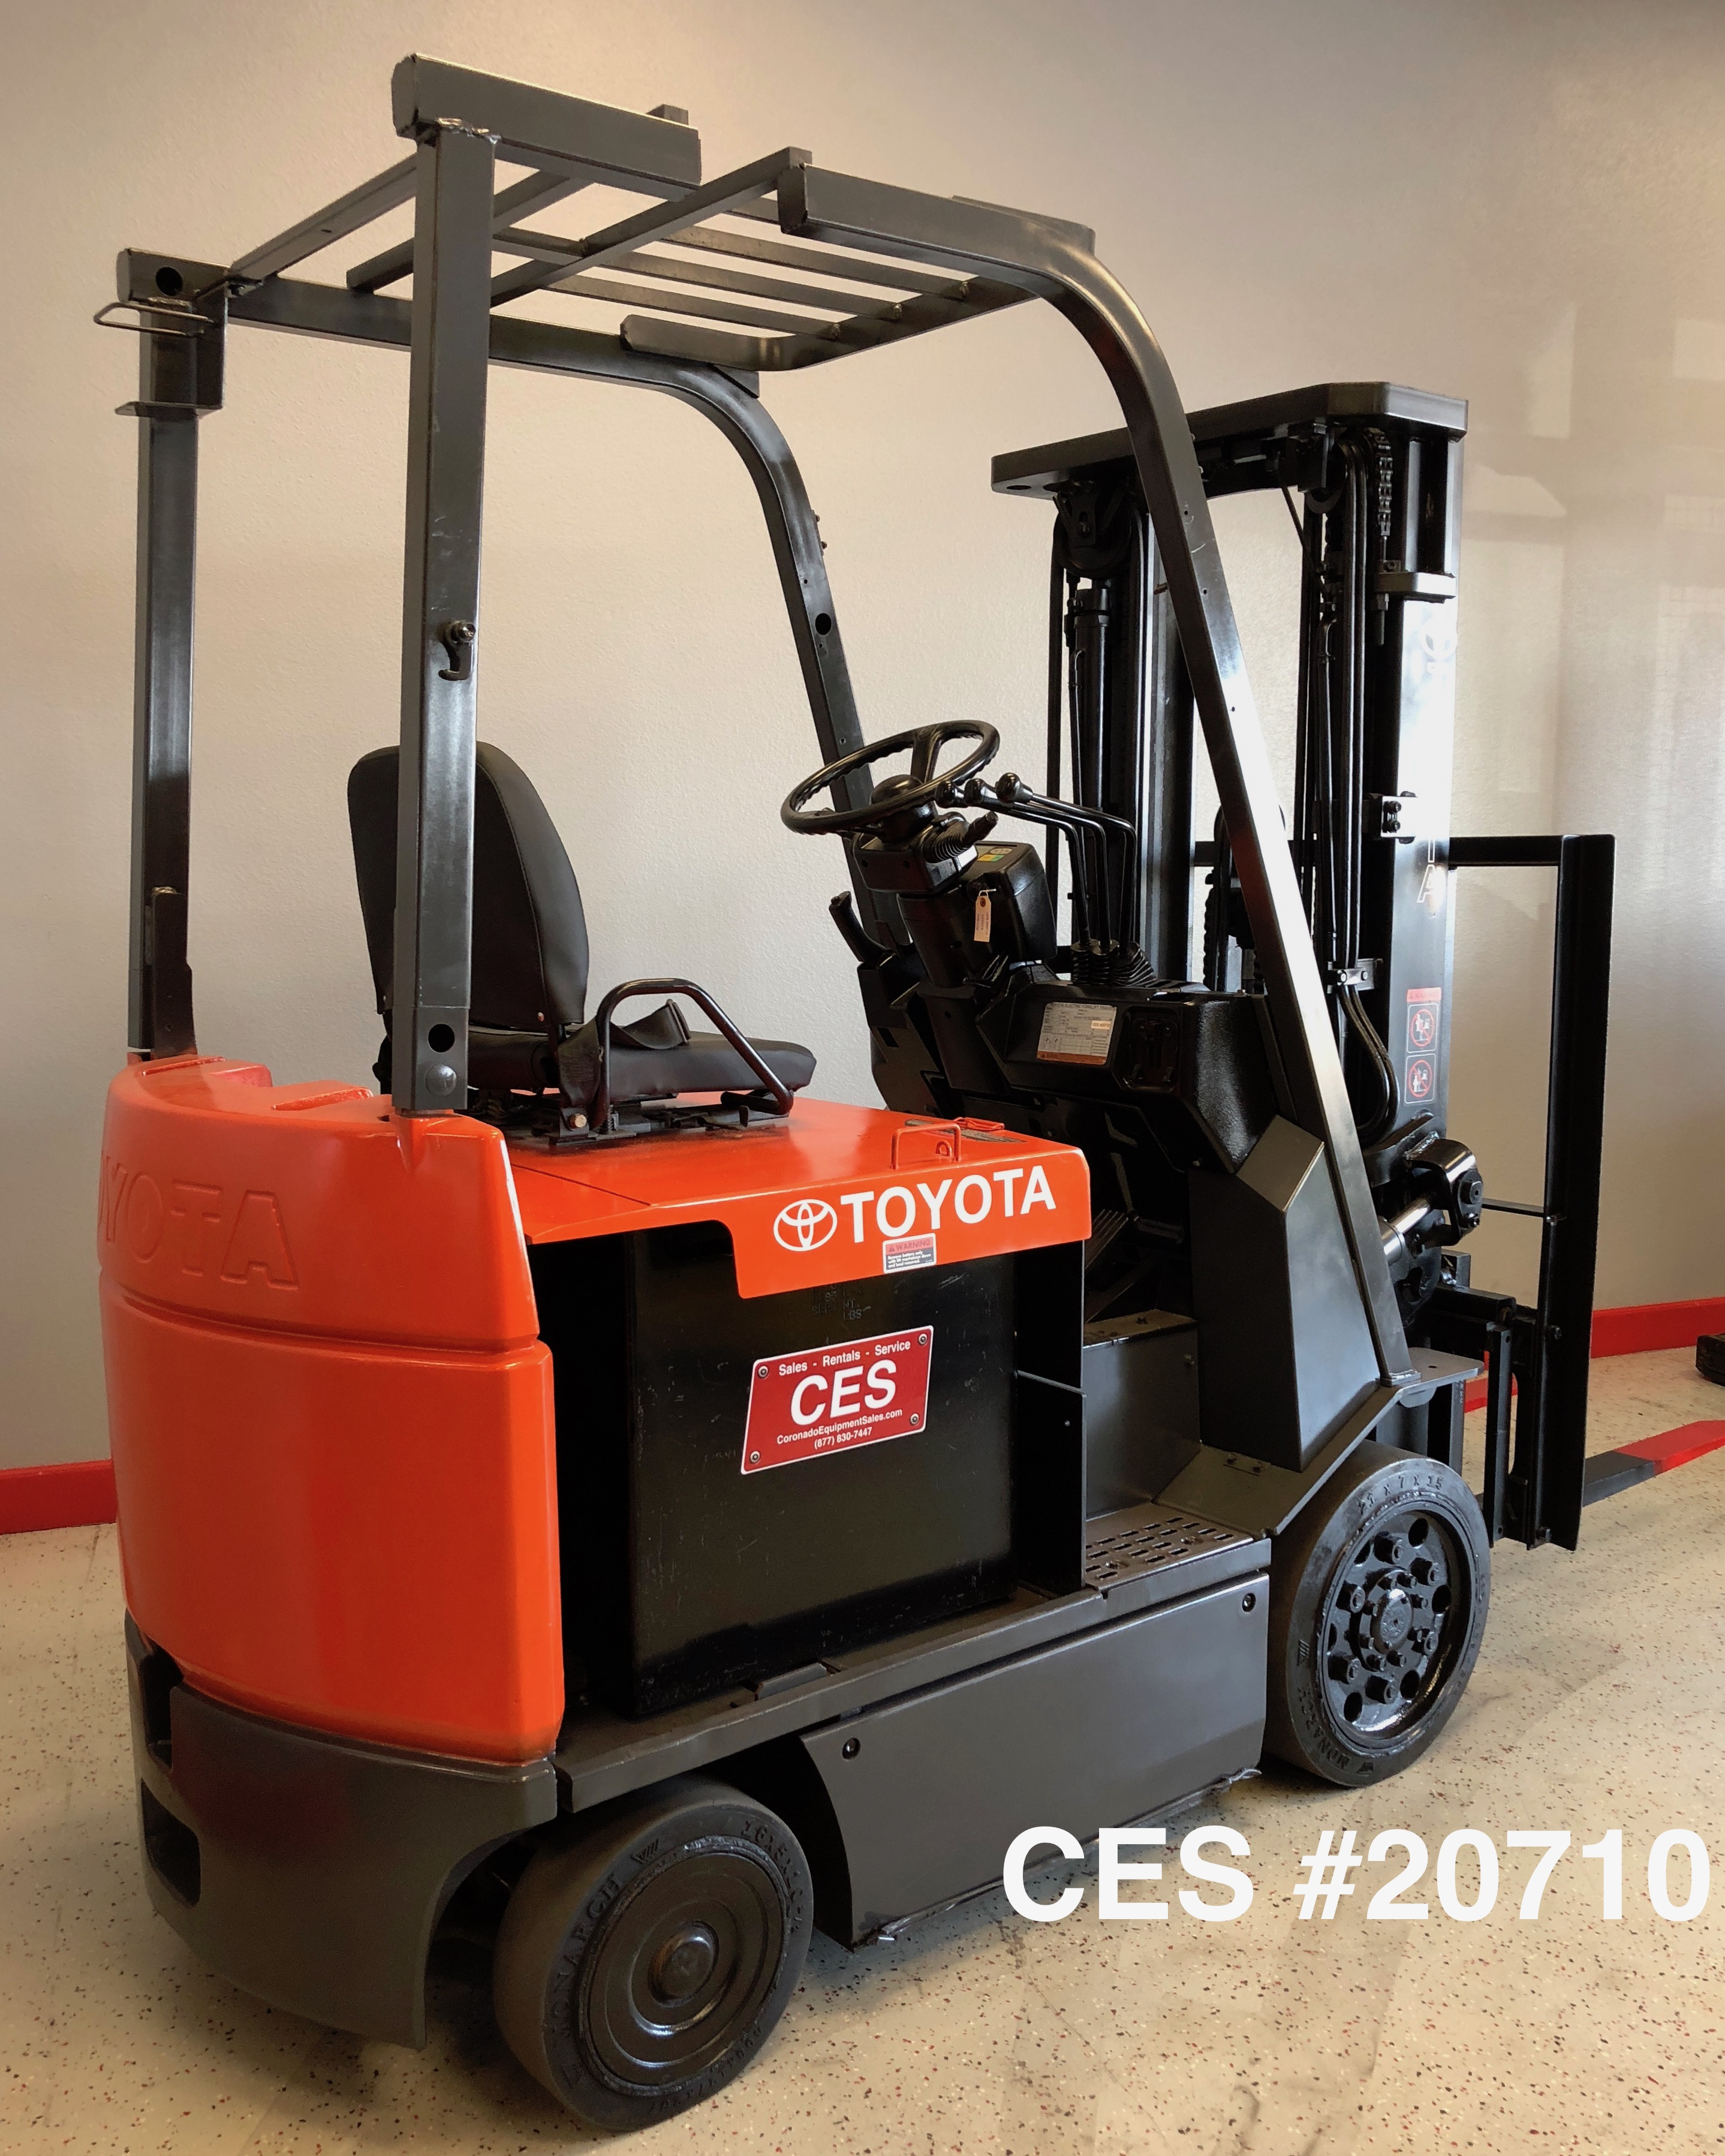 ces 20710 toyota 7fbcu25 electric forklift coronado equipment sales rh coronadoequipmentsales com Toyota Forklift Model 7FGCU25 Manual toyota forklift model 7fgcu25 manual